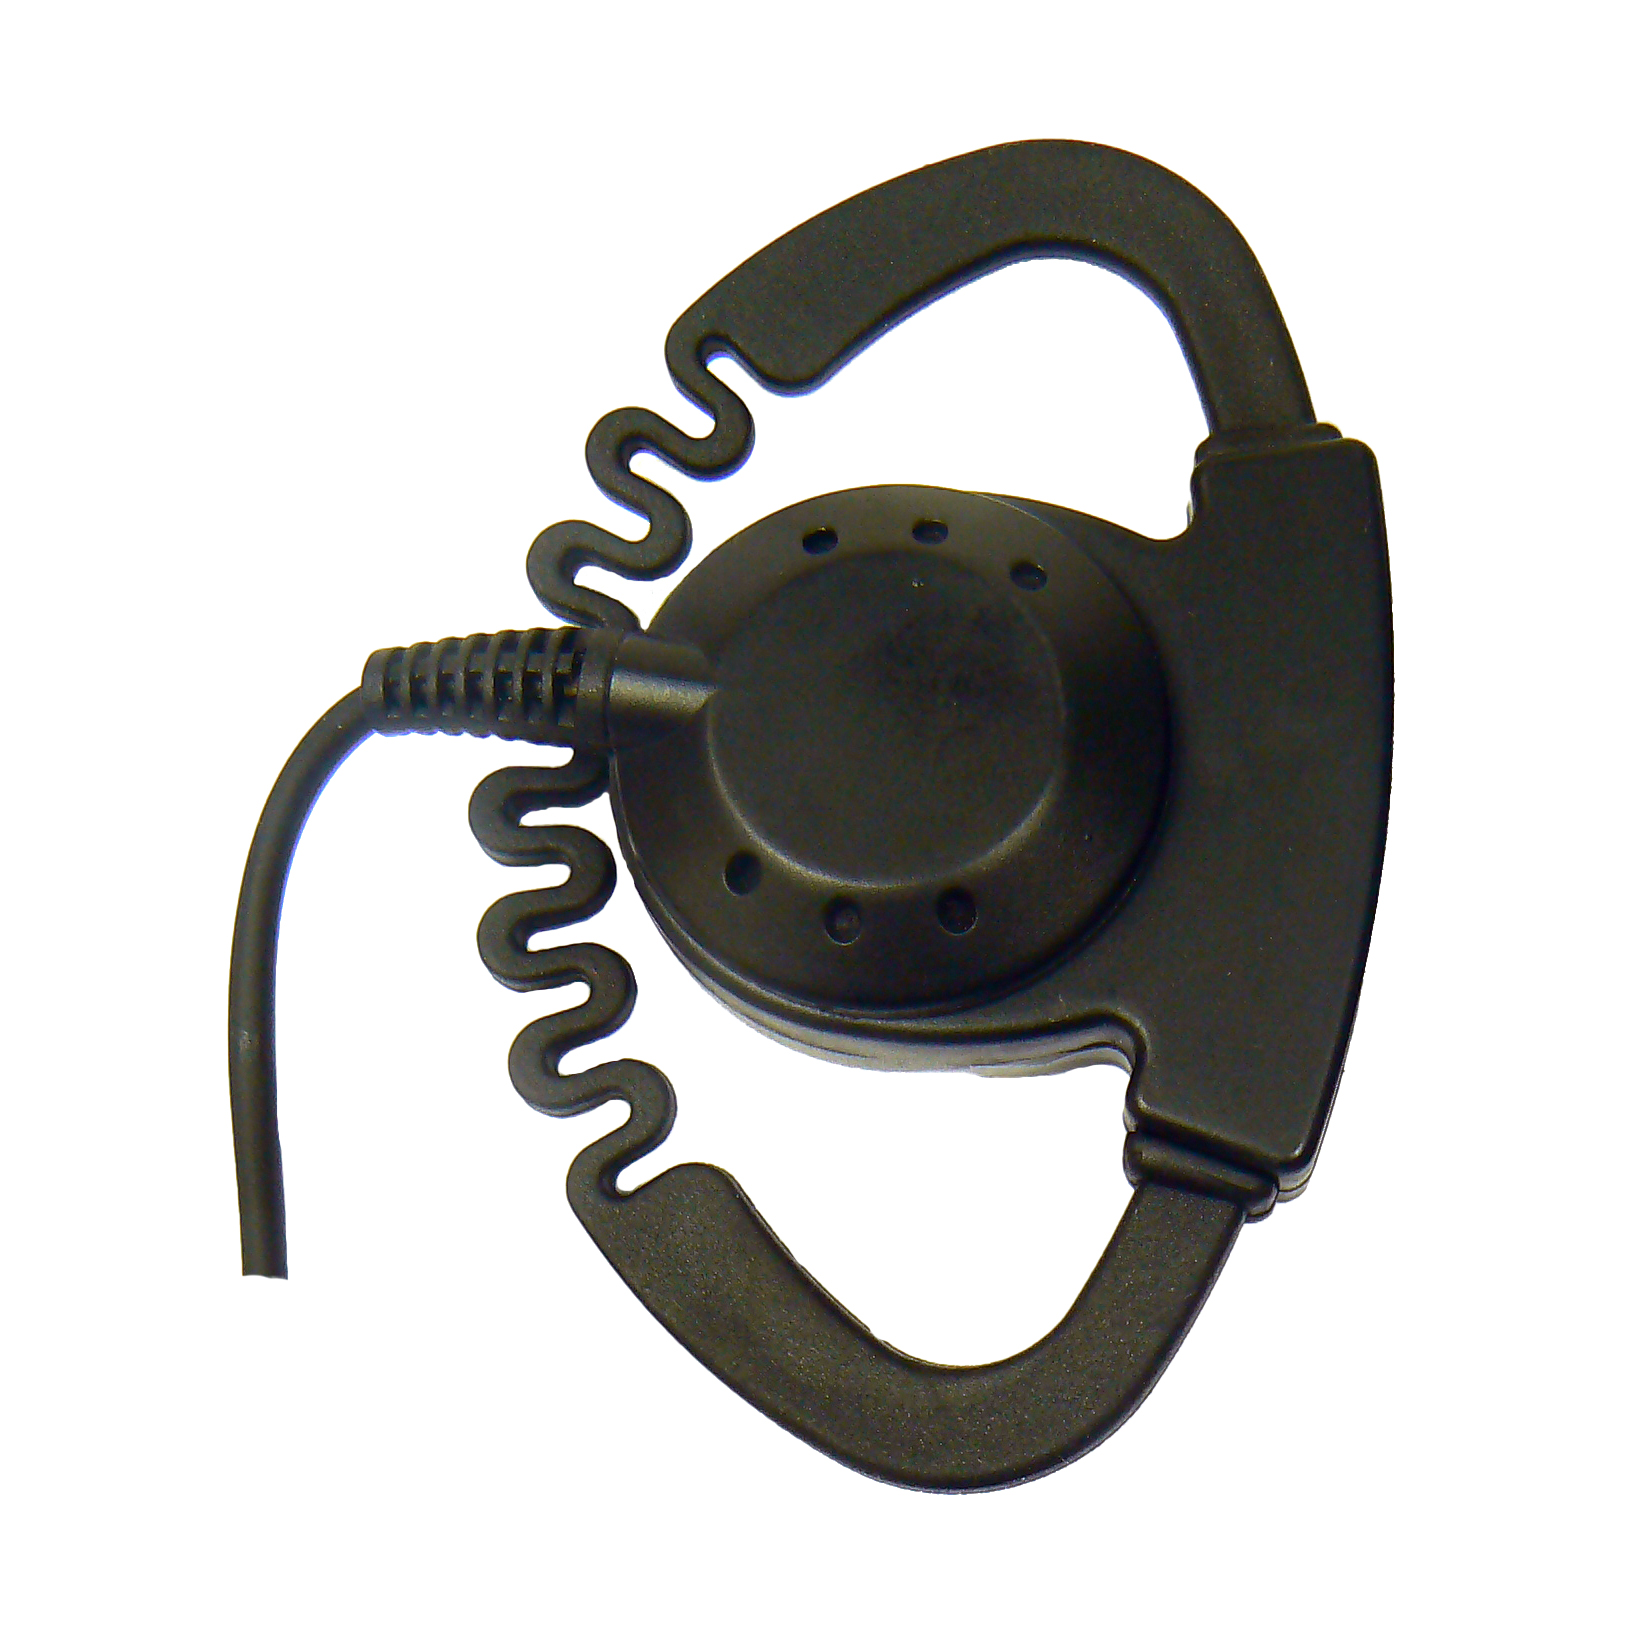 D-Shape earpiece